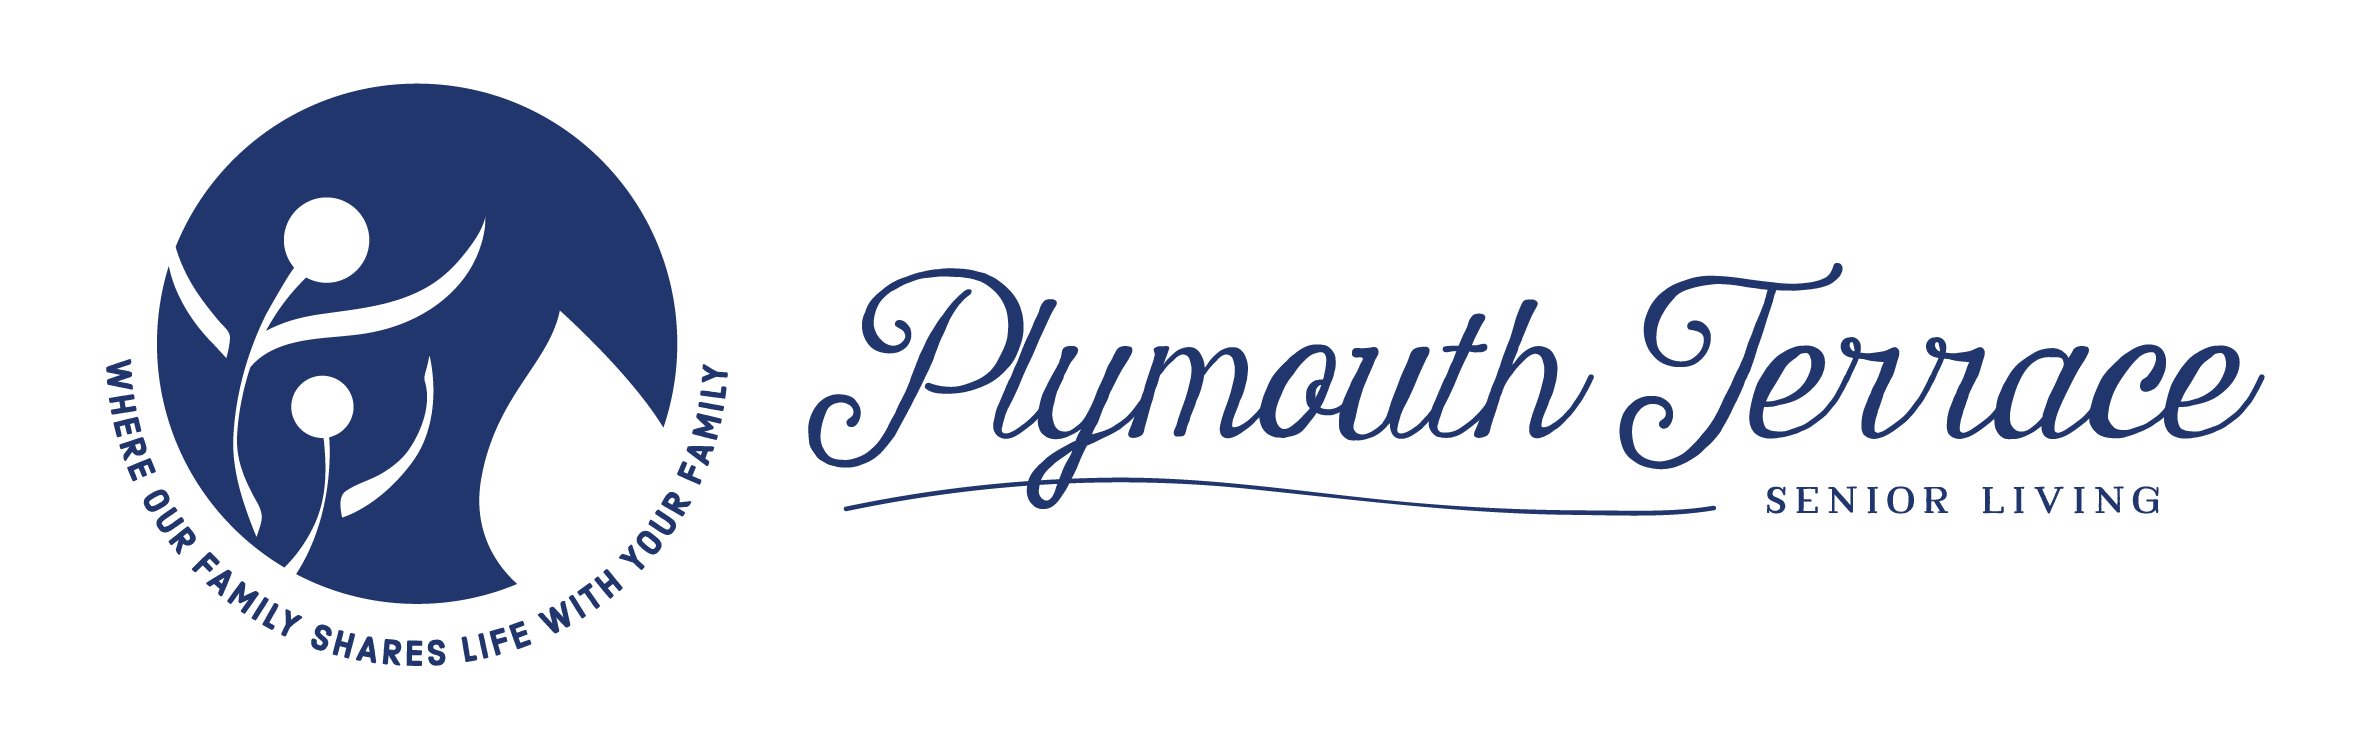 Plymouth Inn Assisted Living